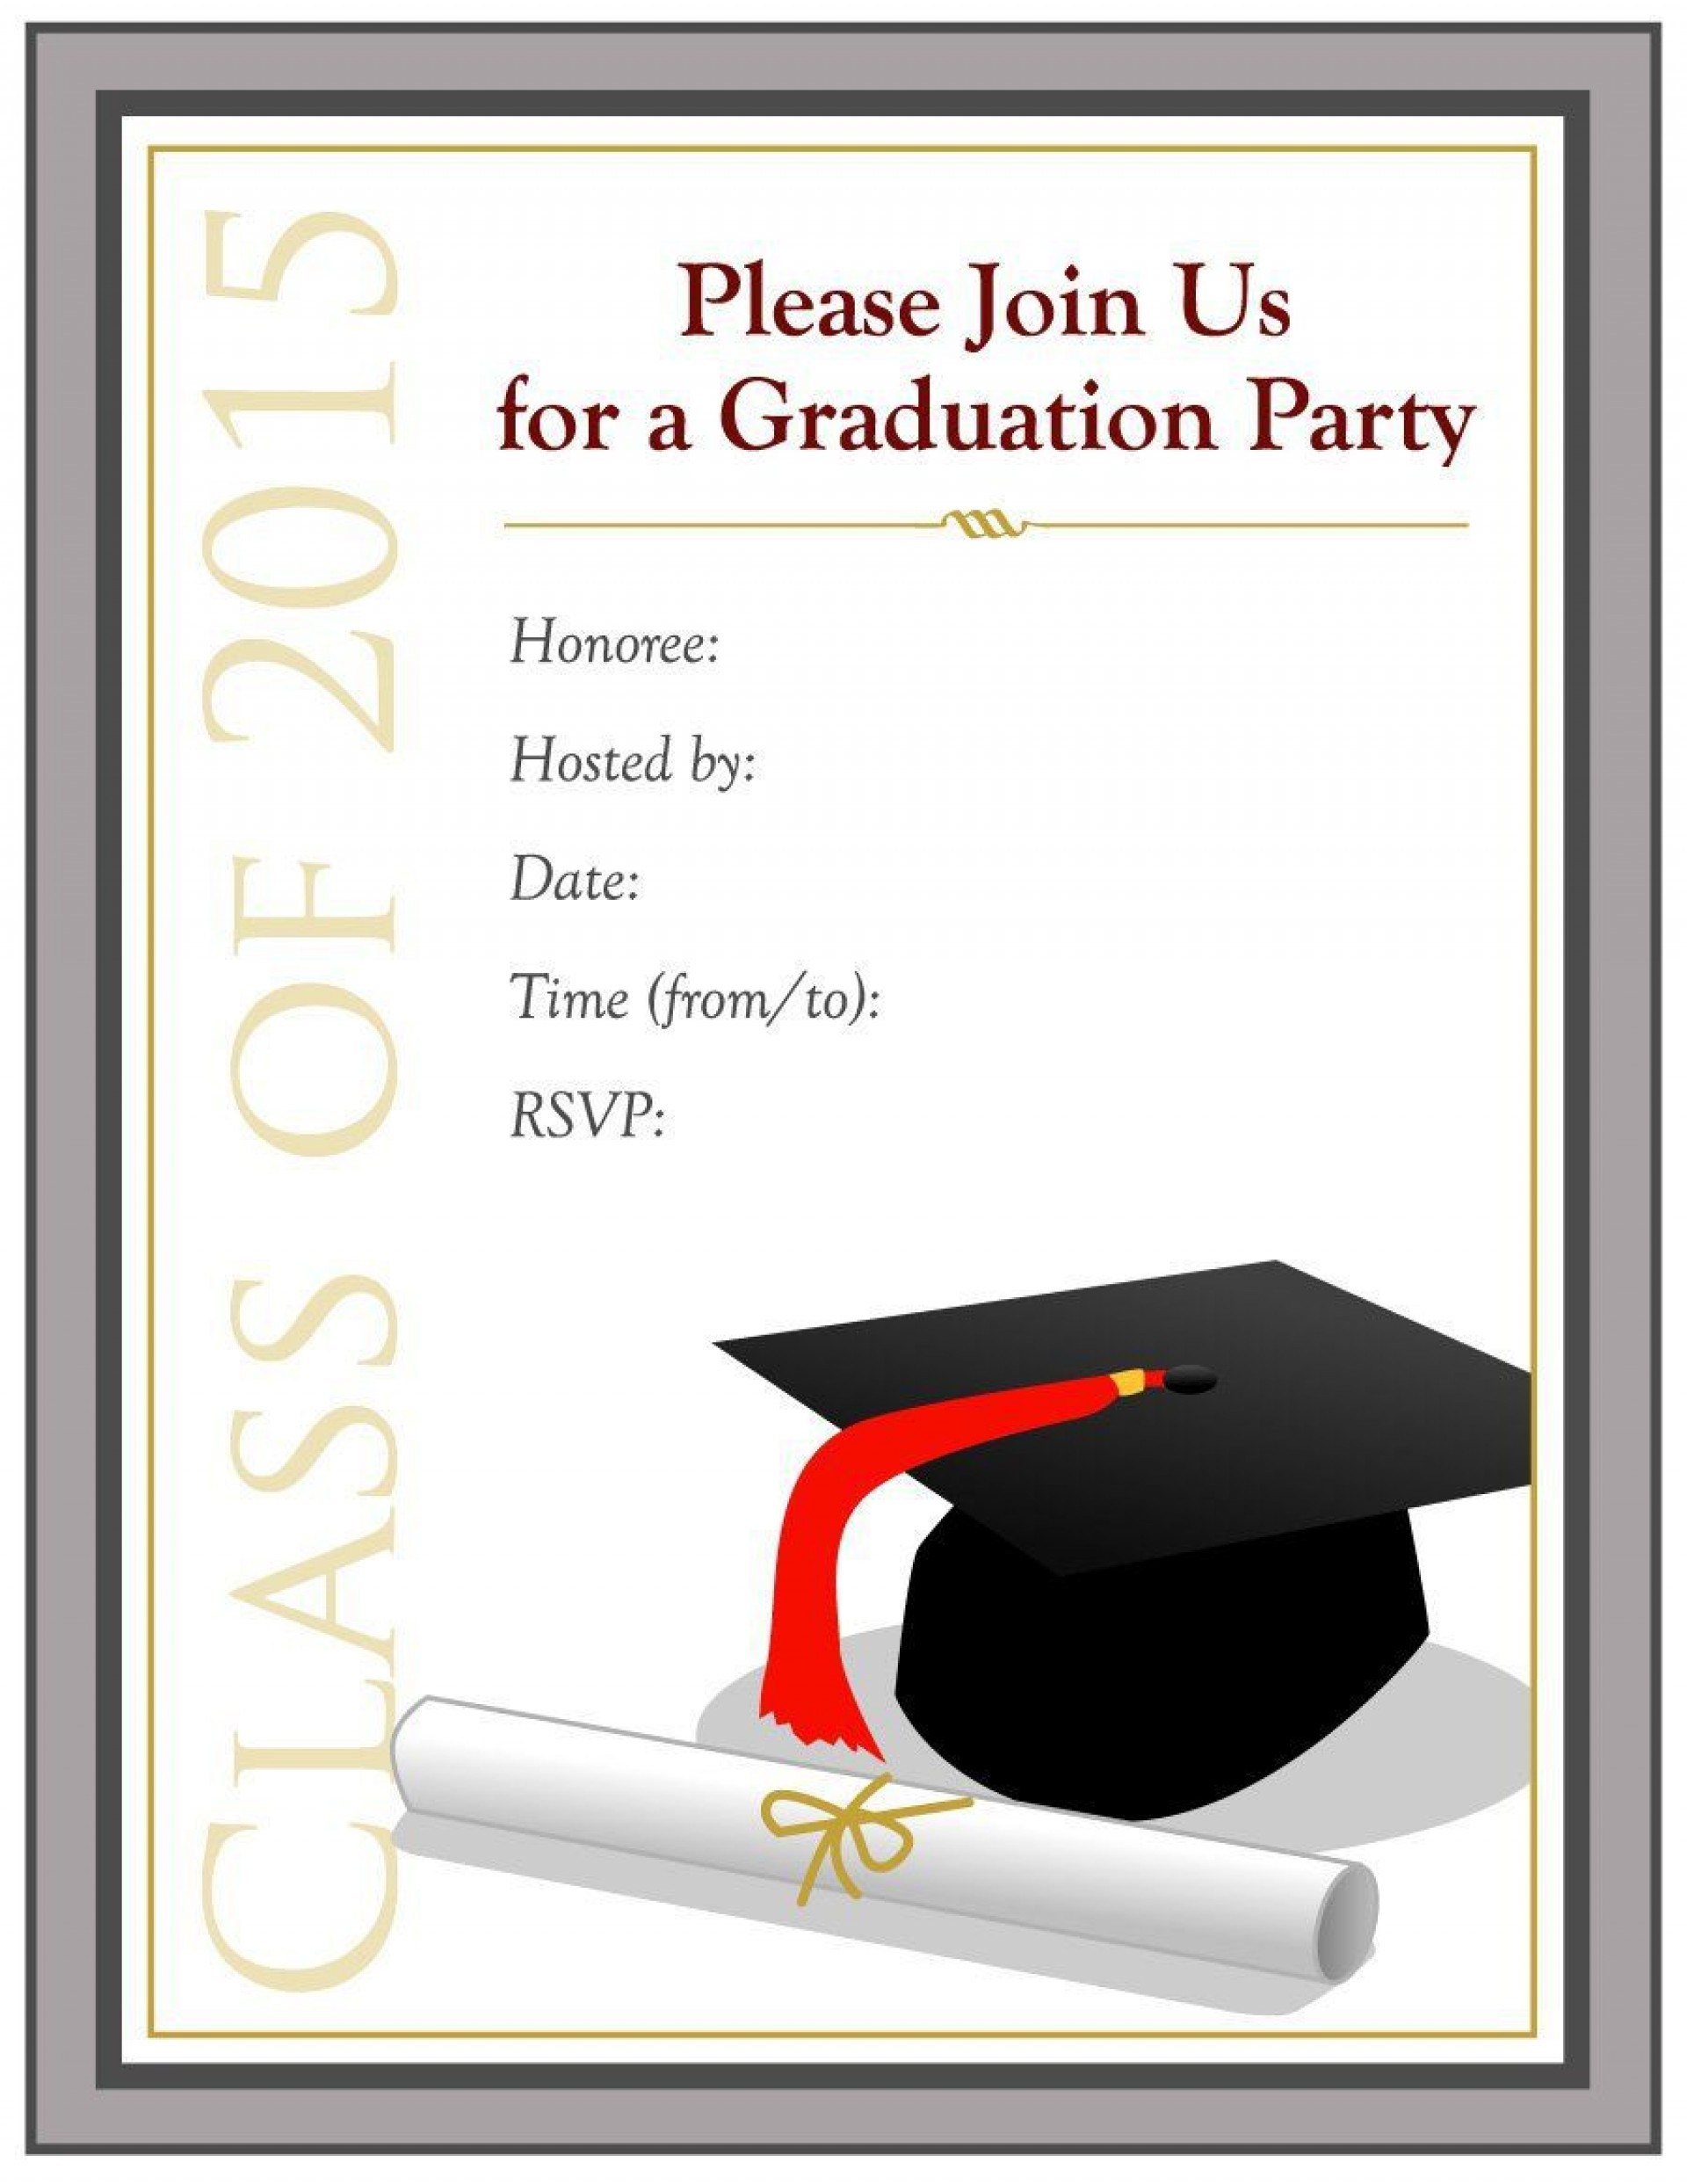 002 Remarkable Microsoft Word Graduation Party Invitation Template Design 1920